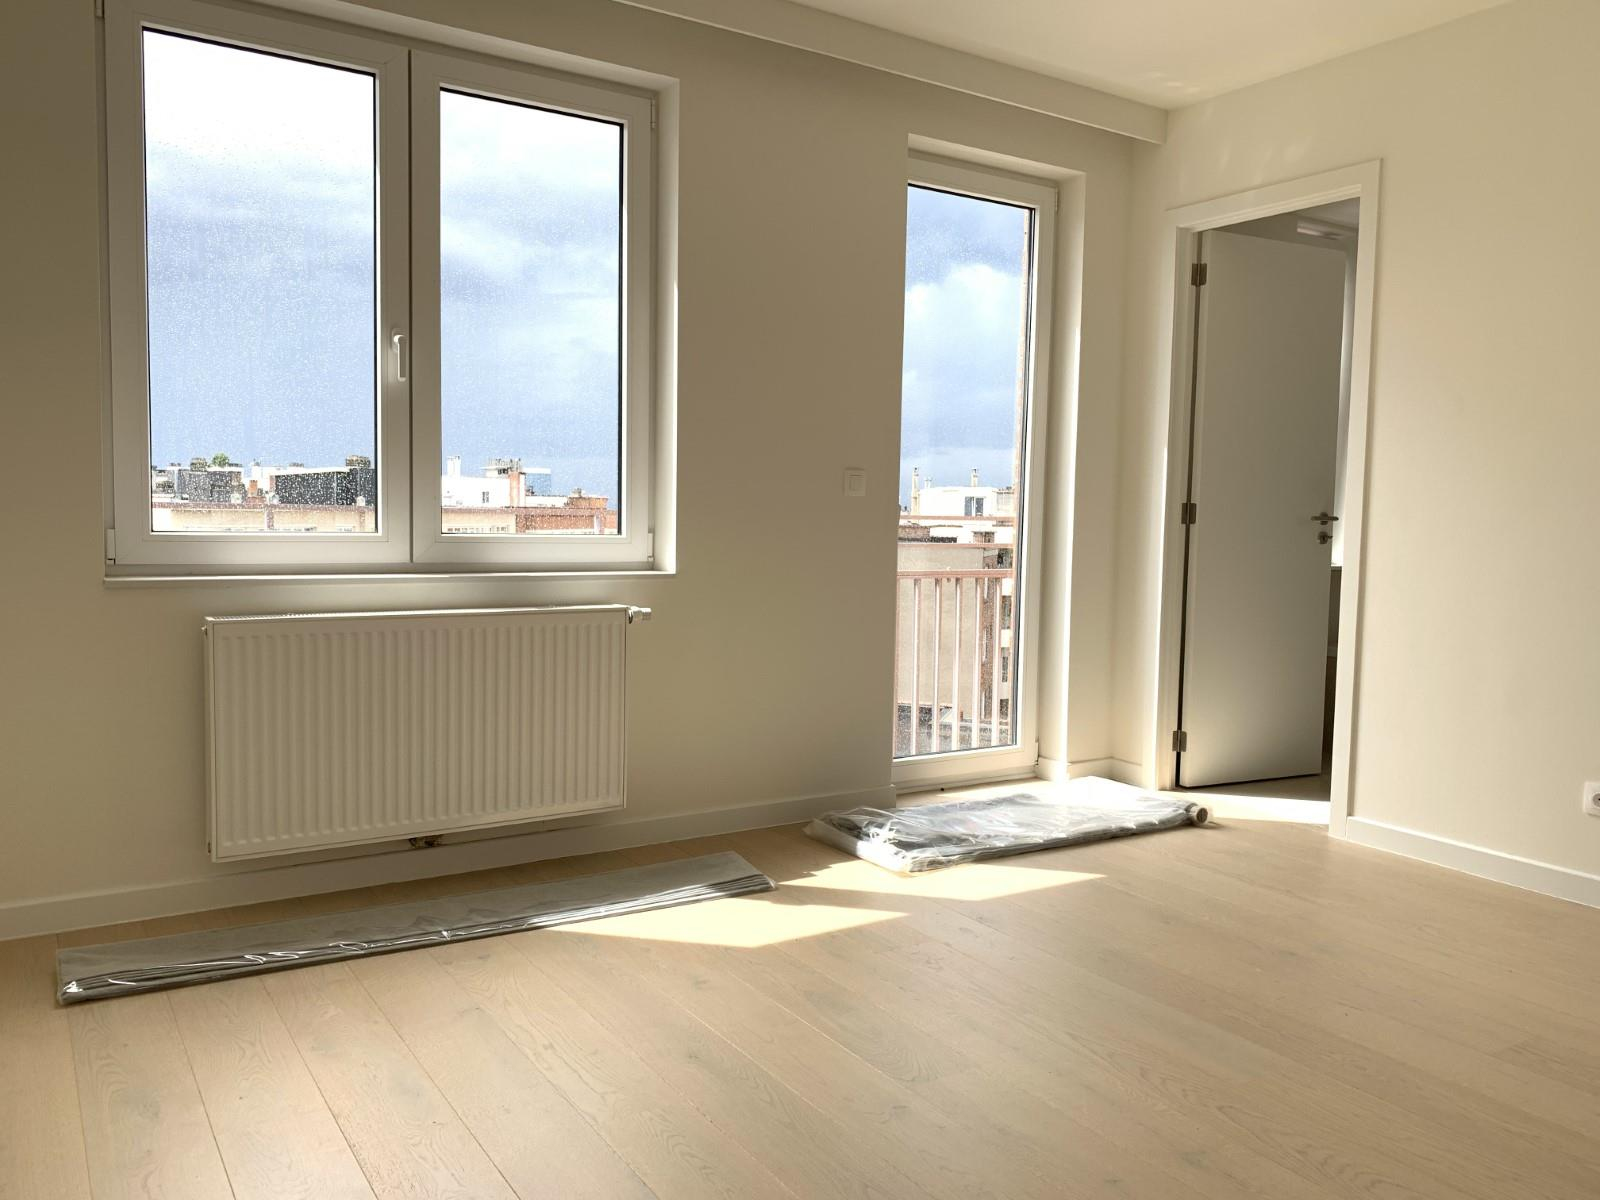 Appartement exceptionnel - Schaerbeek - #3875201-18